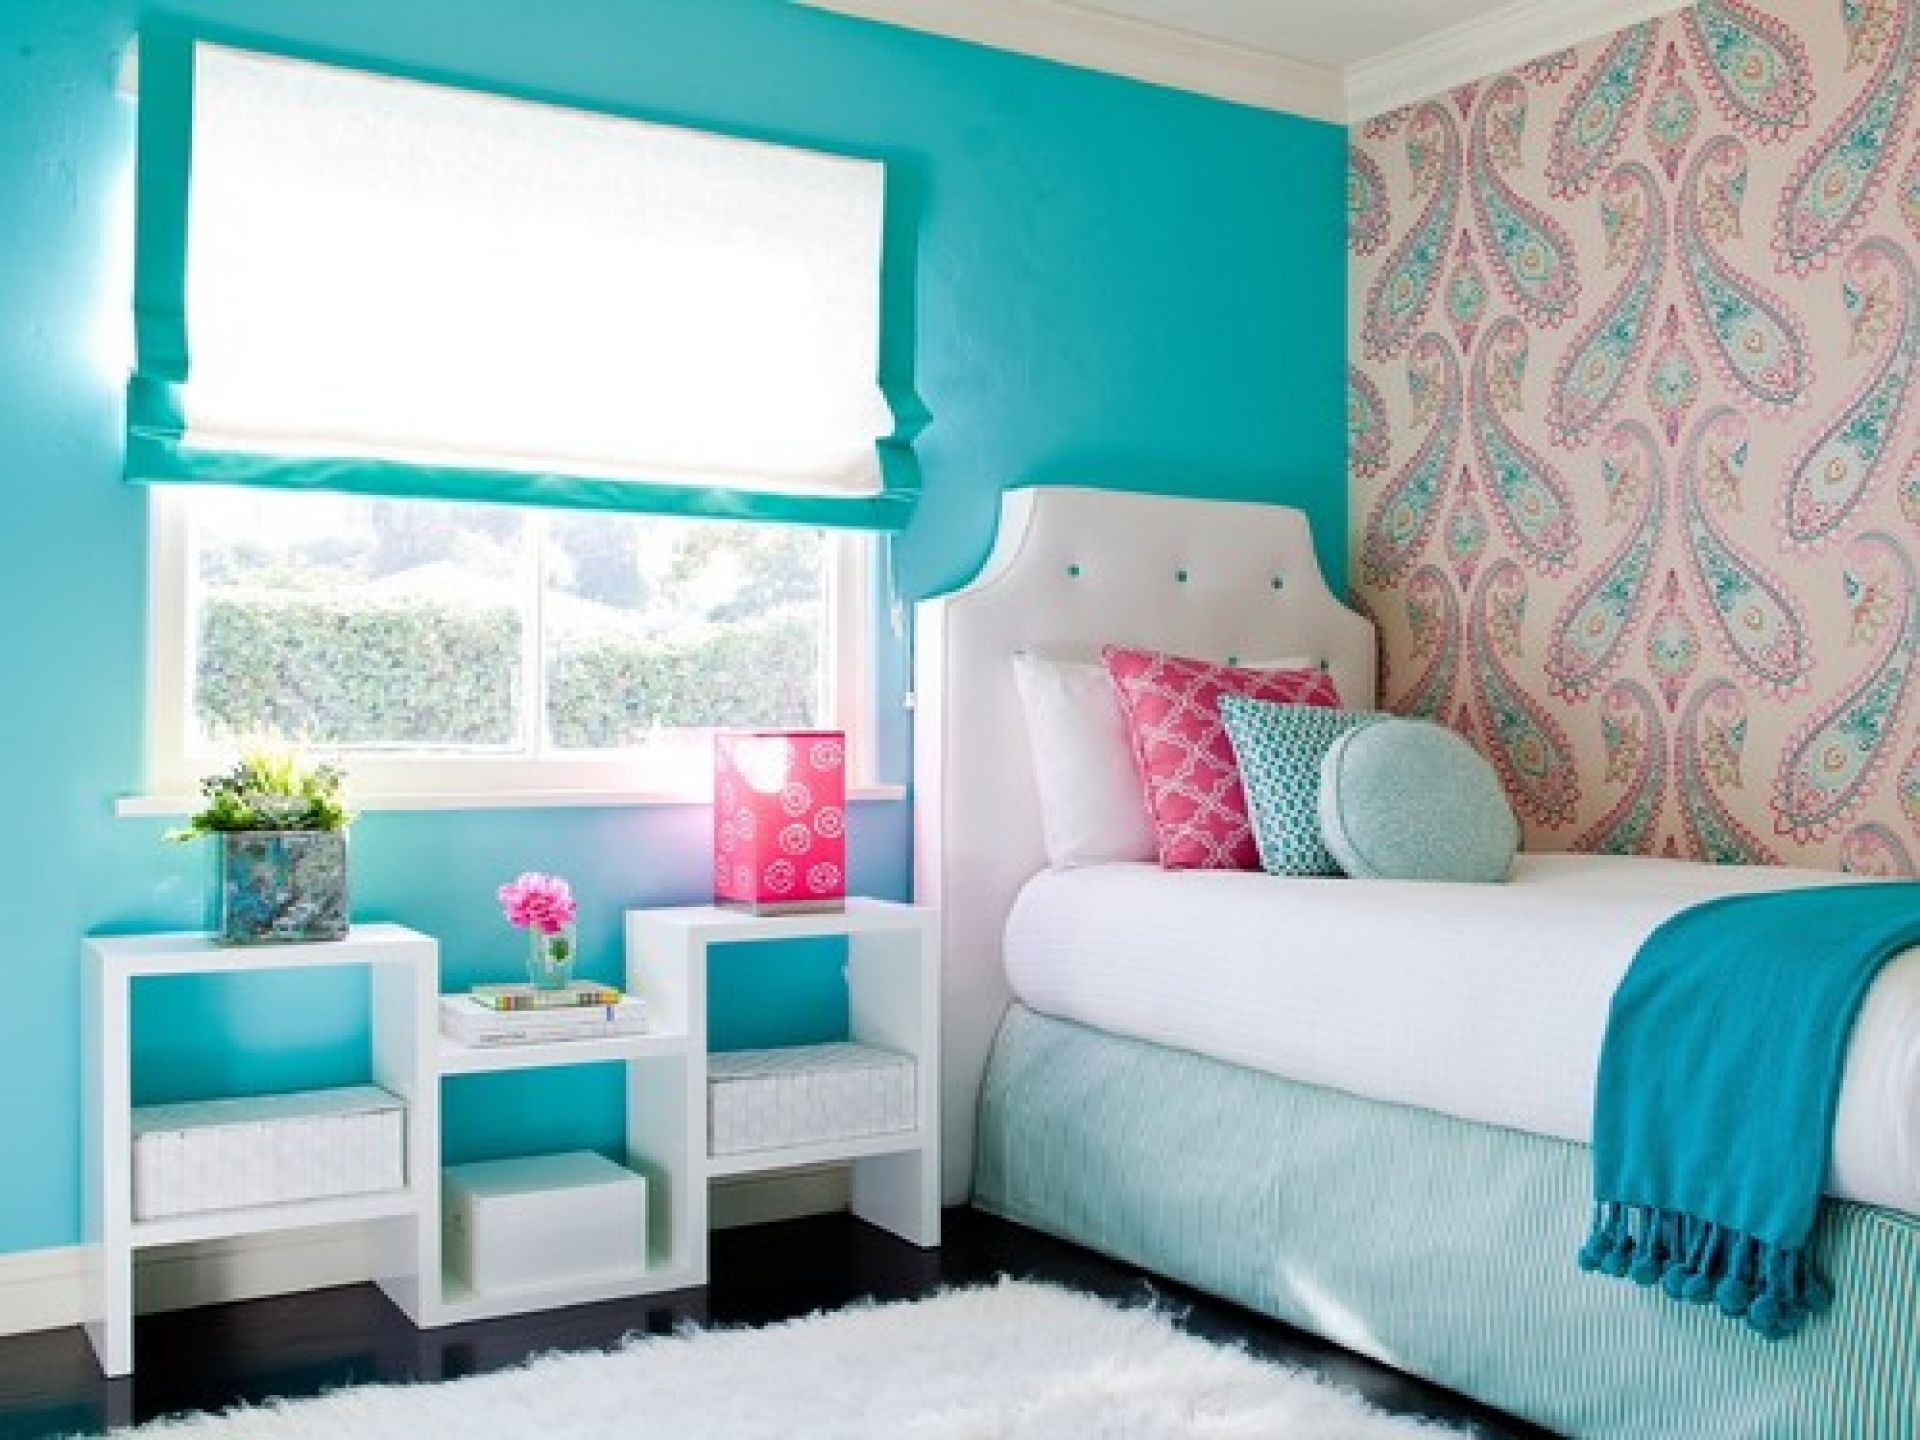 Bedroom ideas for teenage girls teal and pink - Simple Design Comfy Room Colors Teenage Girl Bedroom Wall Paint Ideas Colors For Bedrooms For Teenage